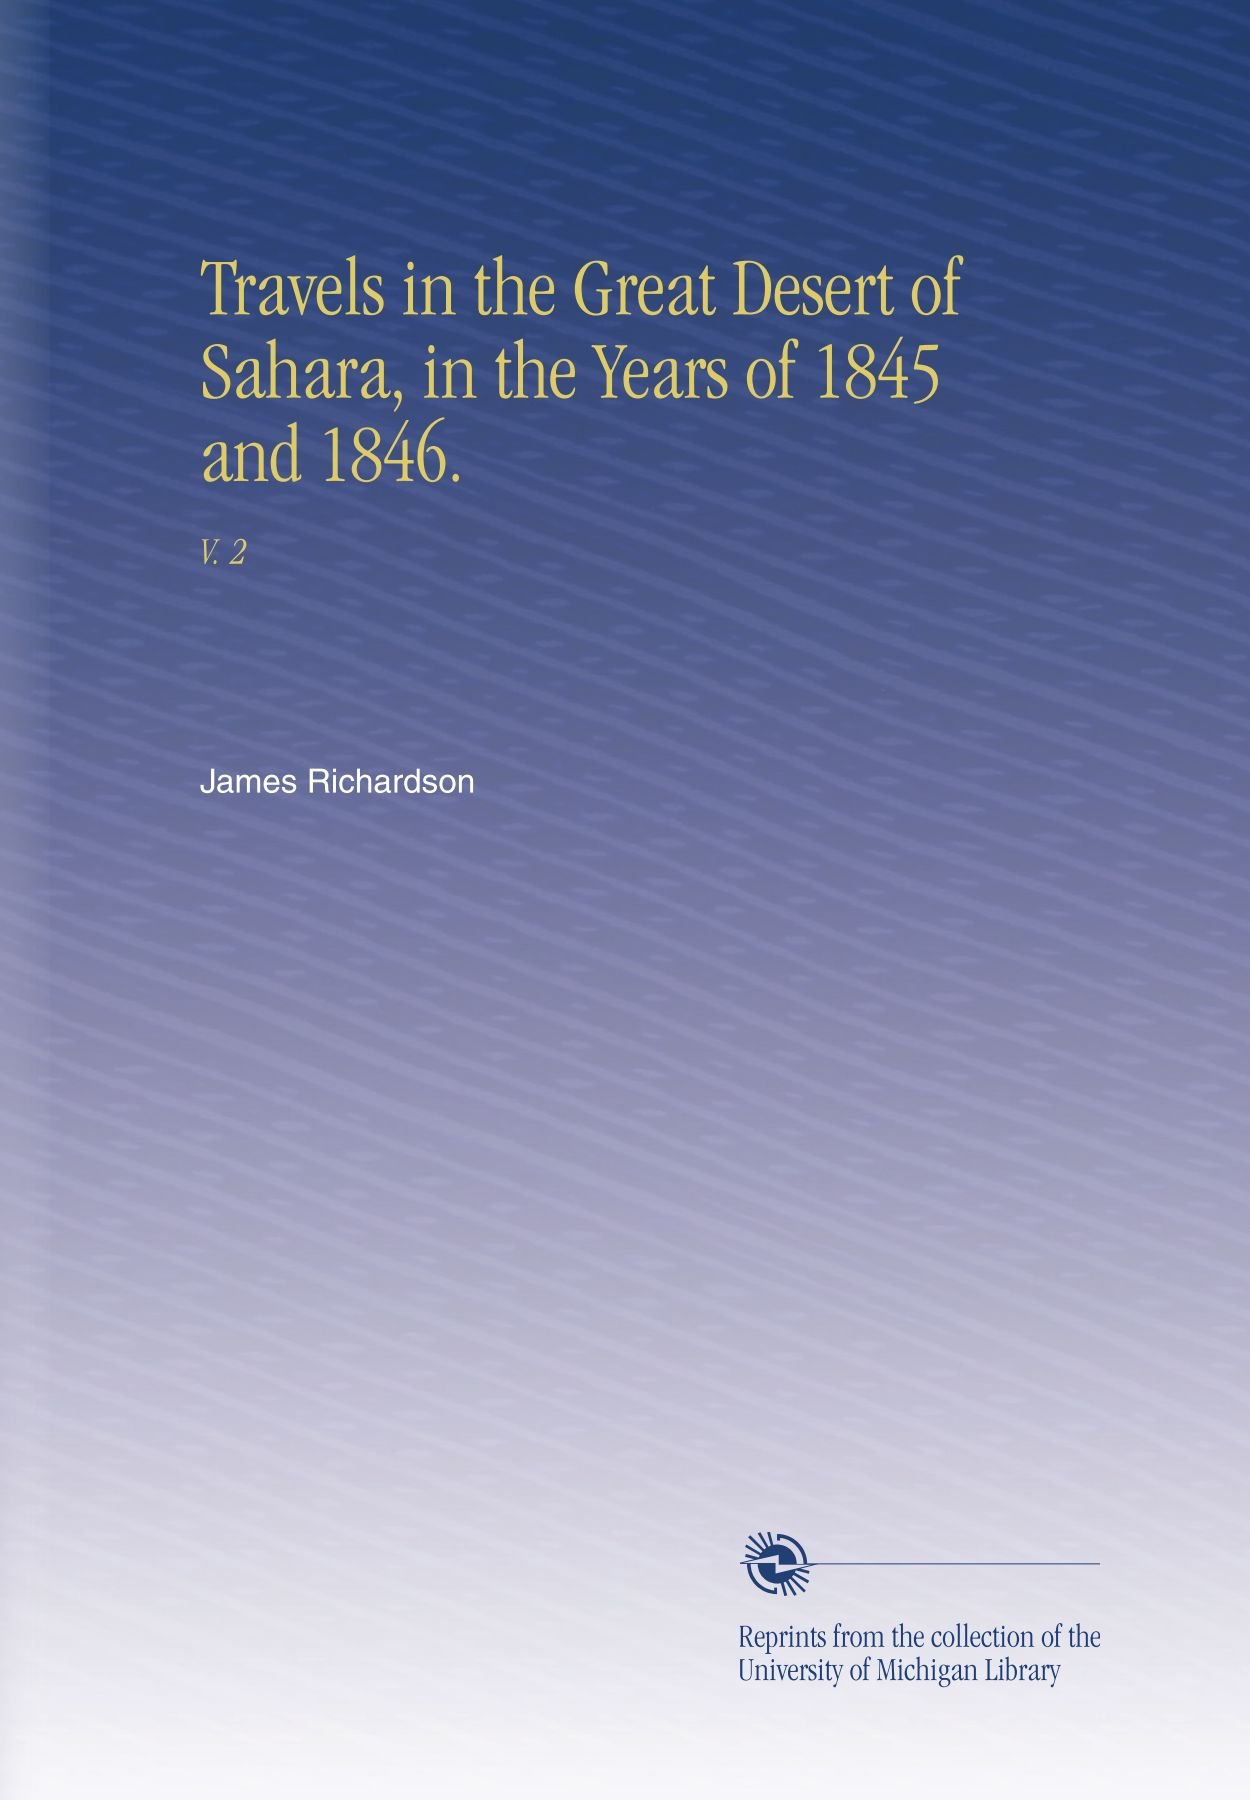 Download Travels in the Great Desert of Sahara, in the Years of 1845 and 1846.: V.  2 pdf epub